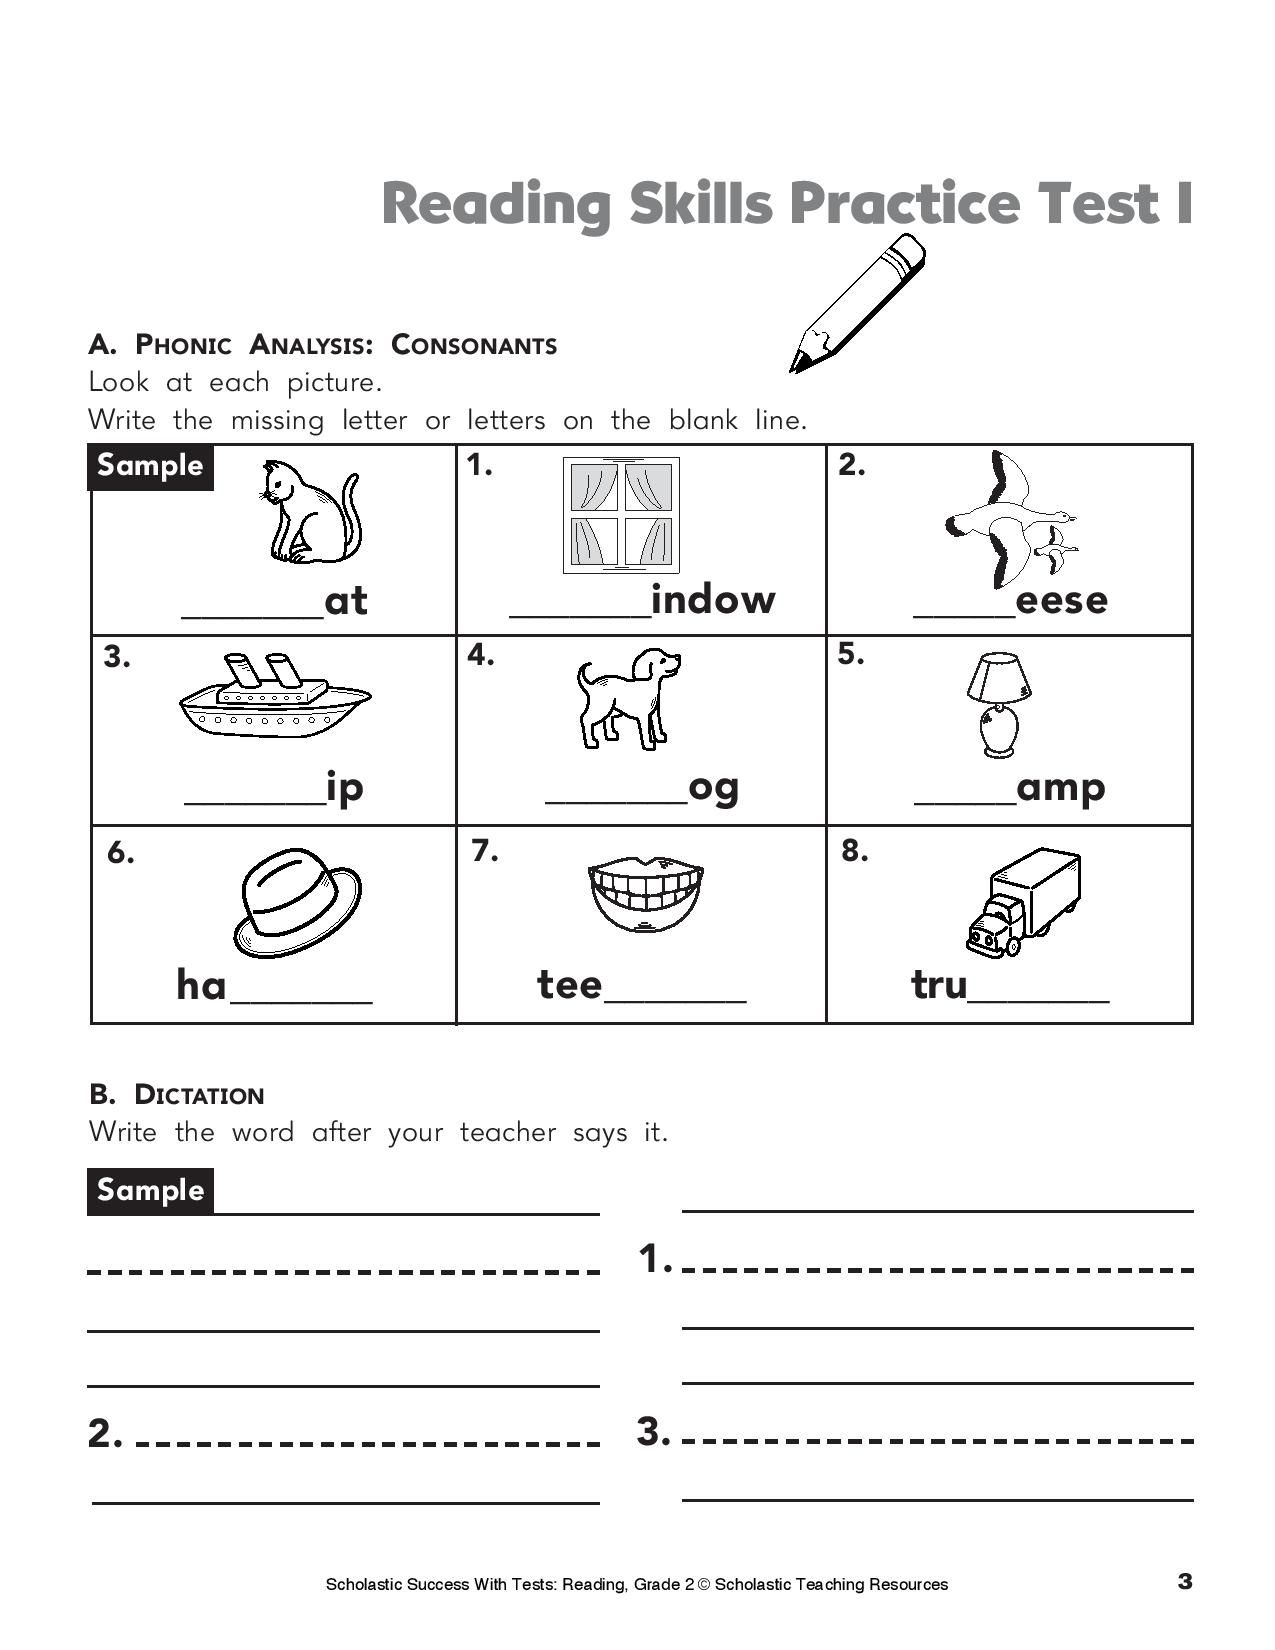 Give Your Child This Printable Reading Practice Test On Phonics - Hooked On Phonics Free Printable Worksheets